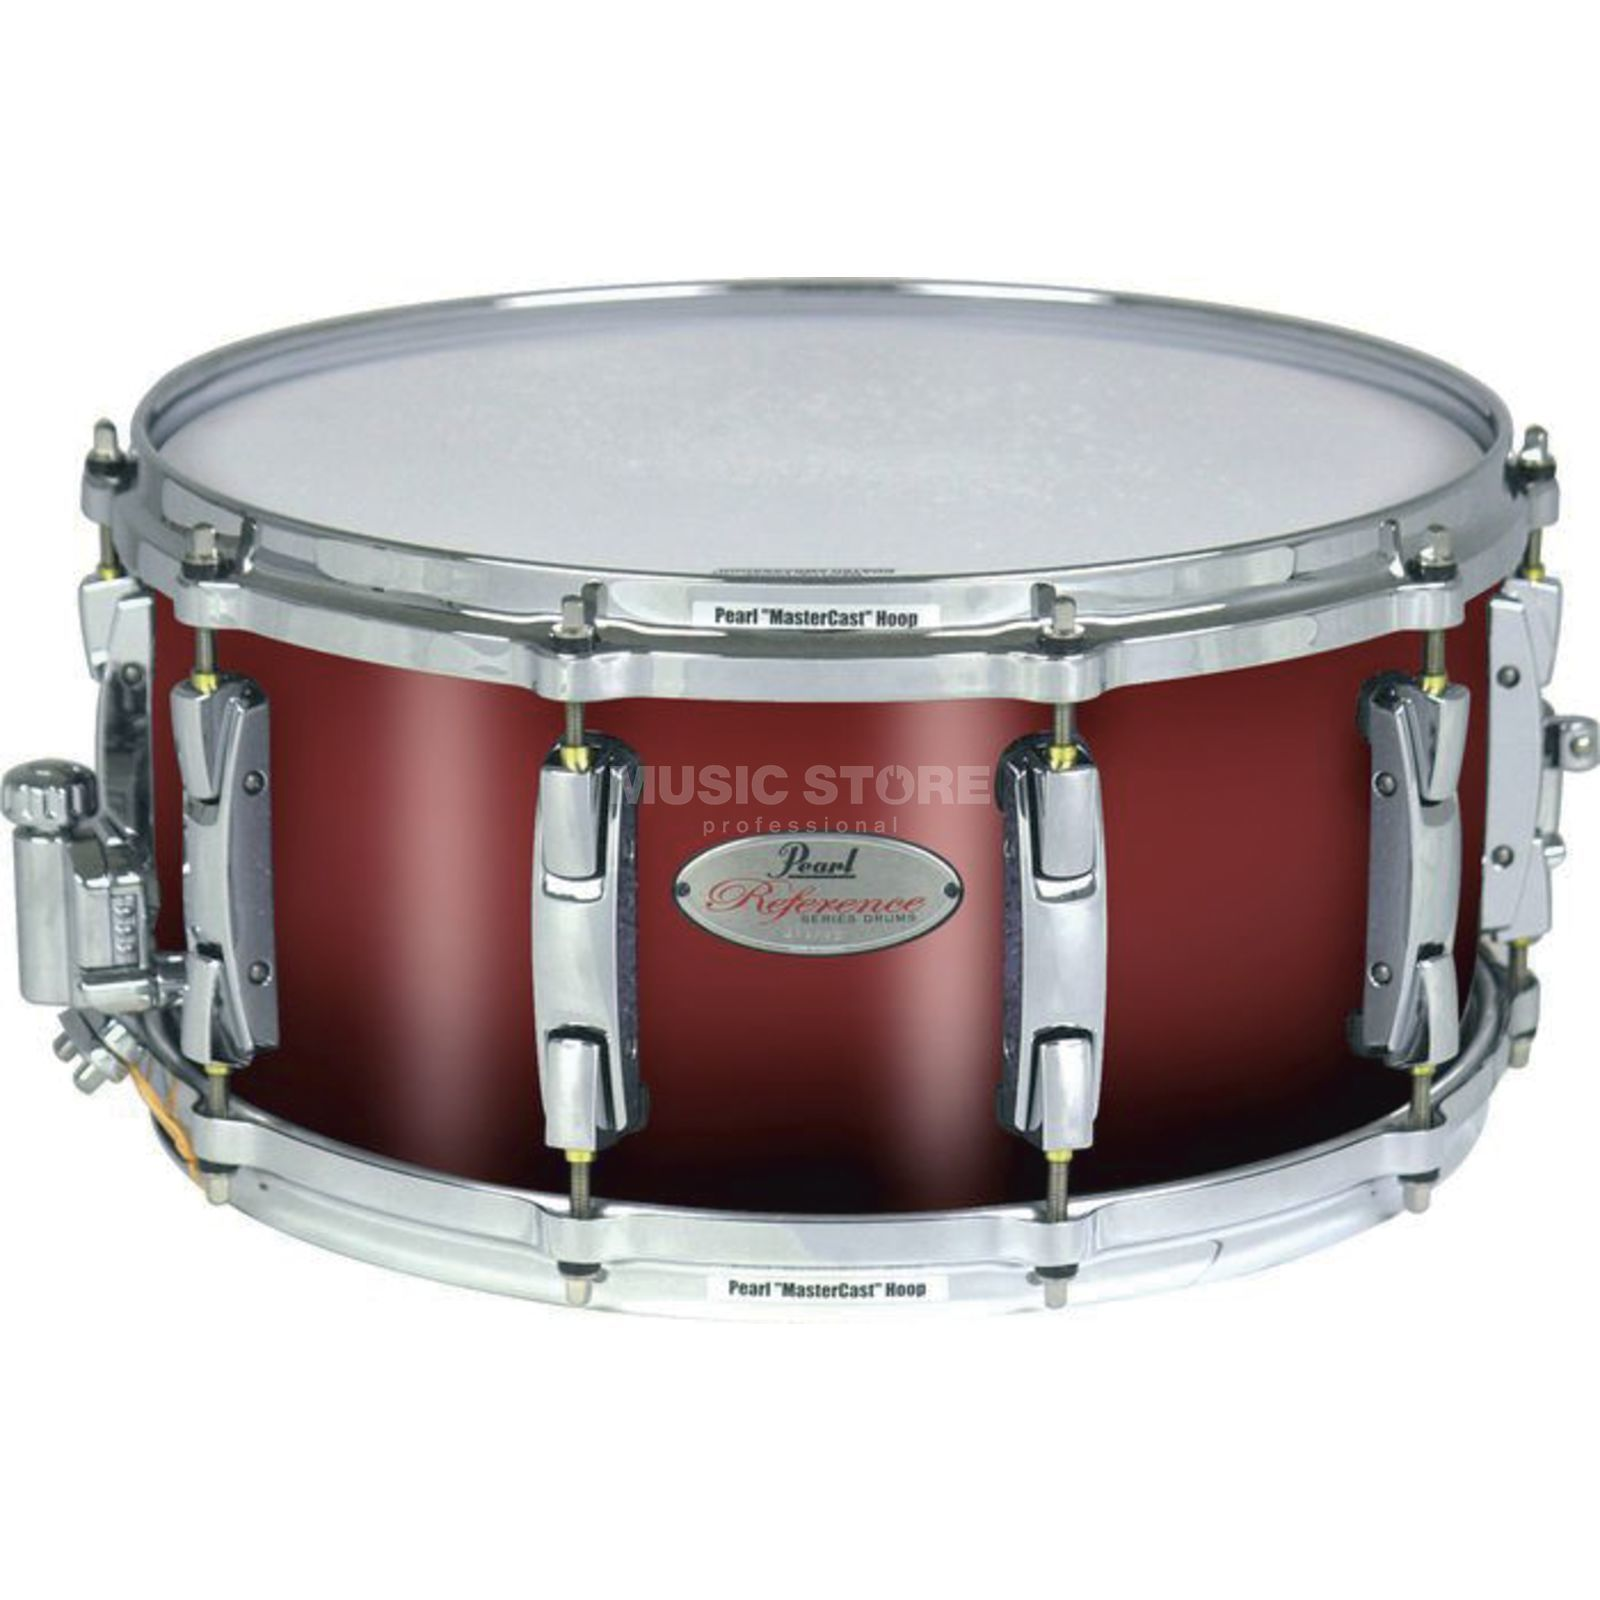 "Pearl RF1465S/C Reference Snare 14""x6.5"", Scarlet Fade #156 Produktbillede"